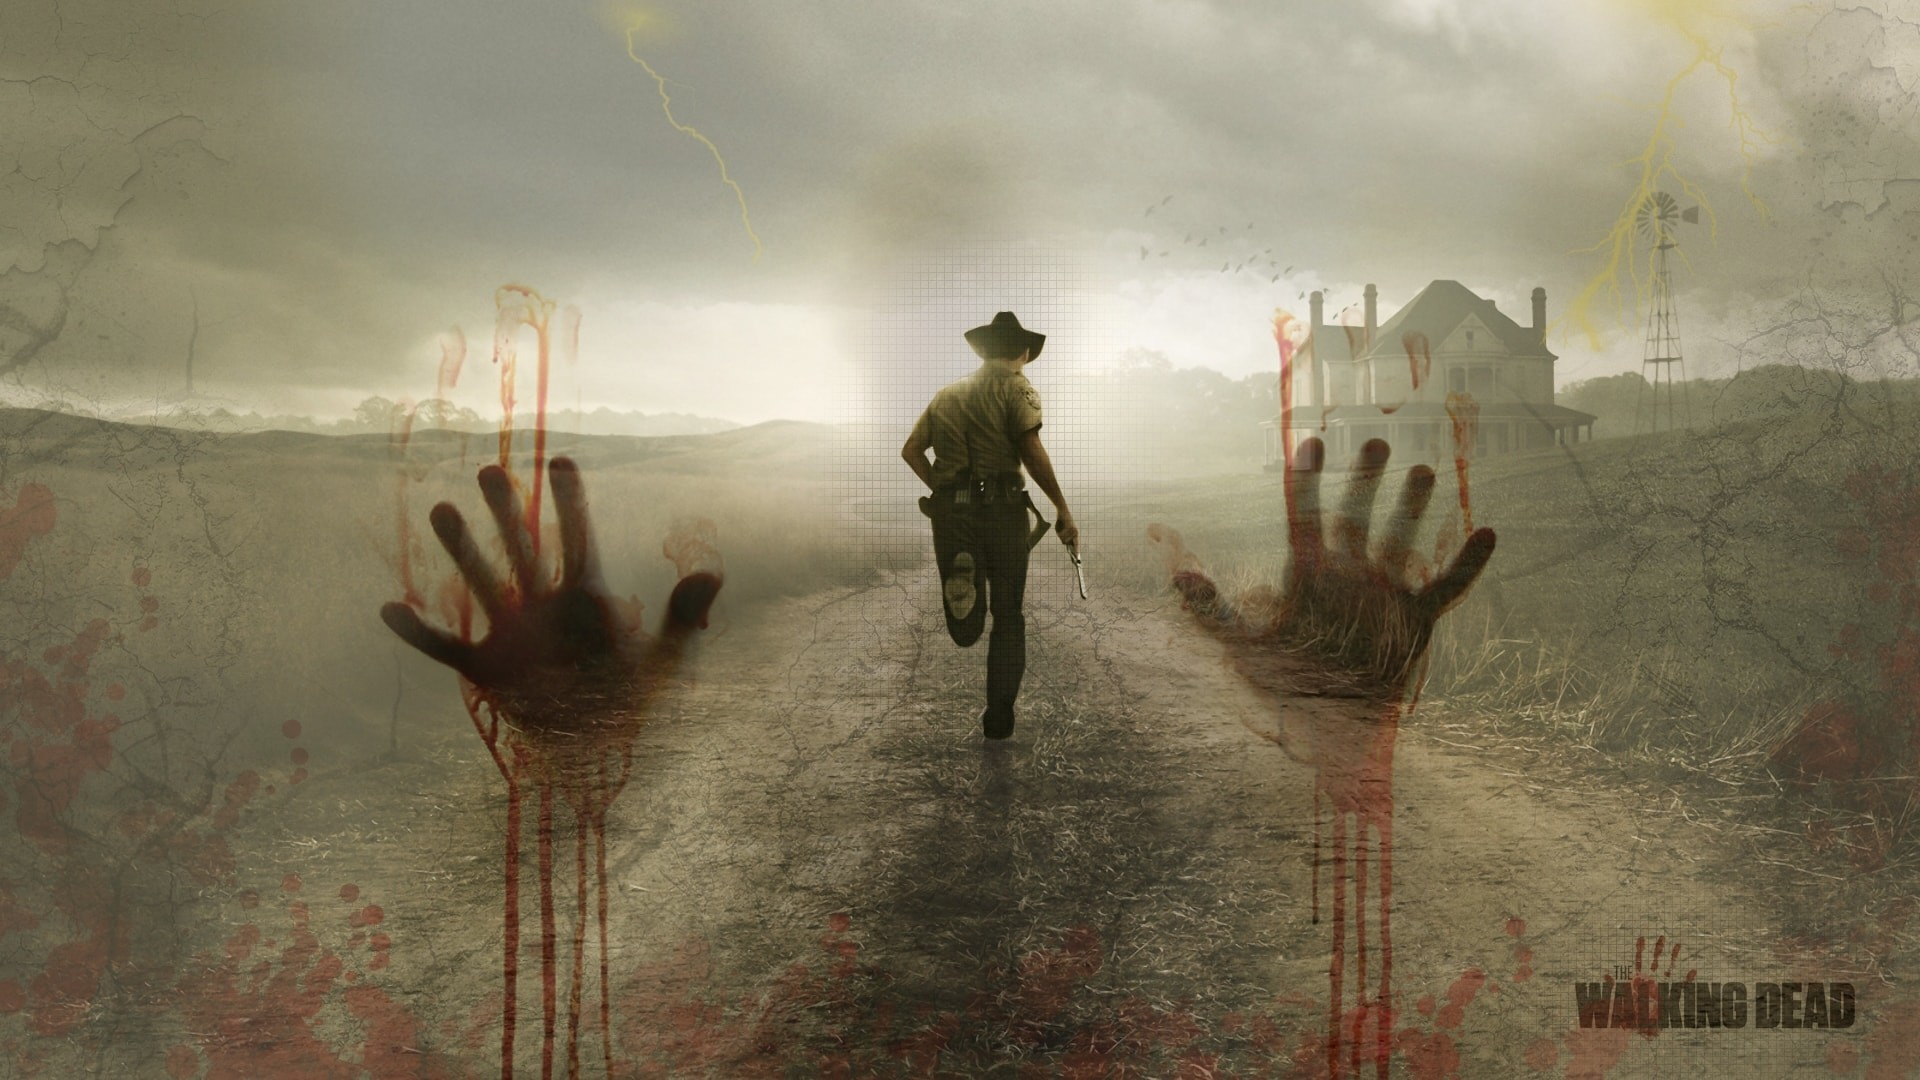 Walking Dead Wallpapers For Android: The Walking Dead Wallpaper HD (73+ Images